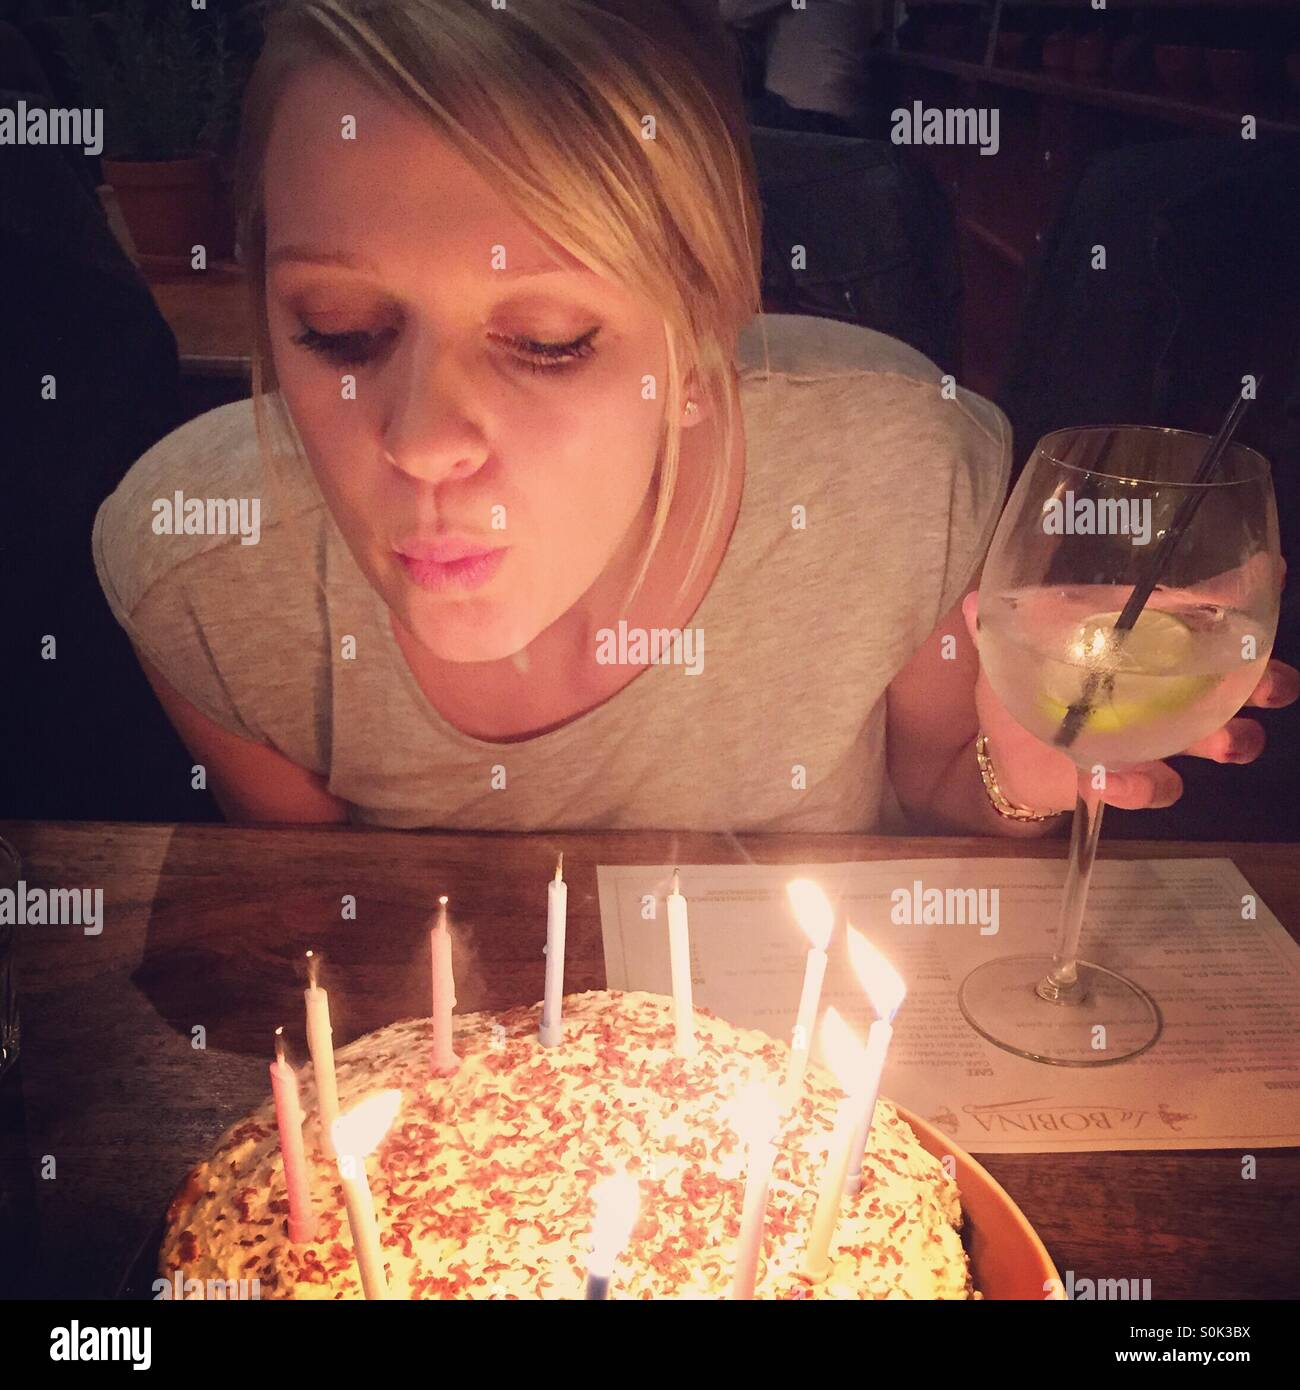 Girl blowing out candles - Stock Image